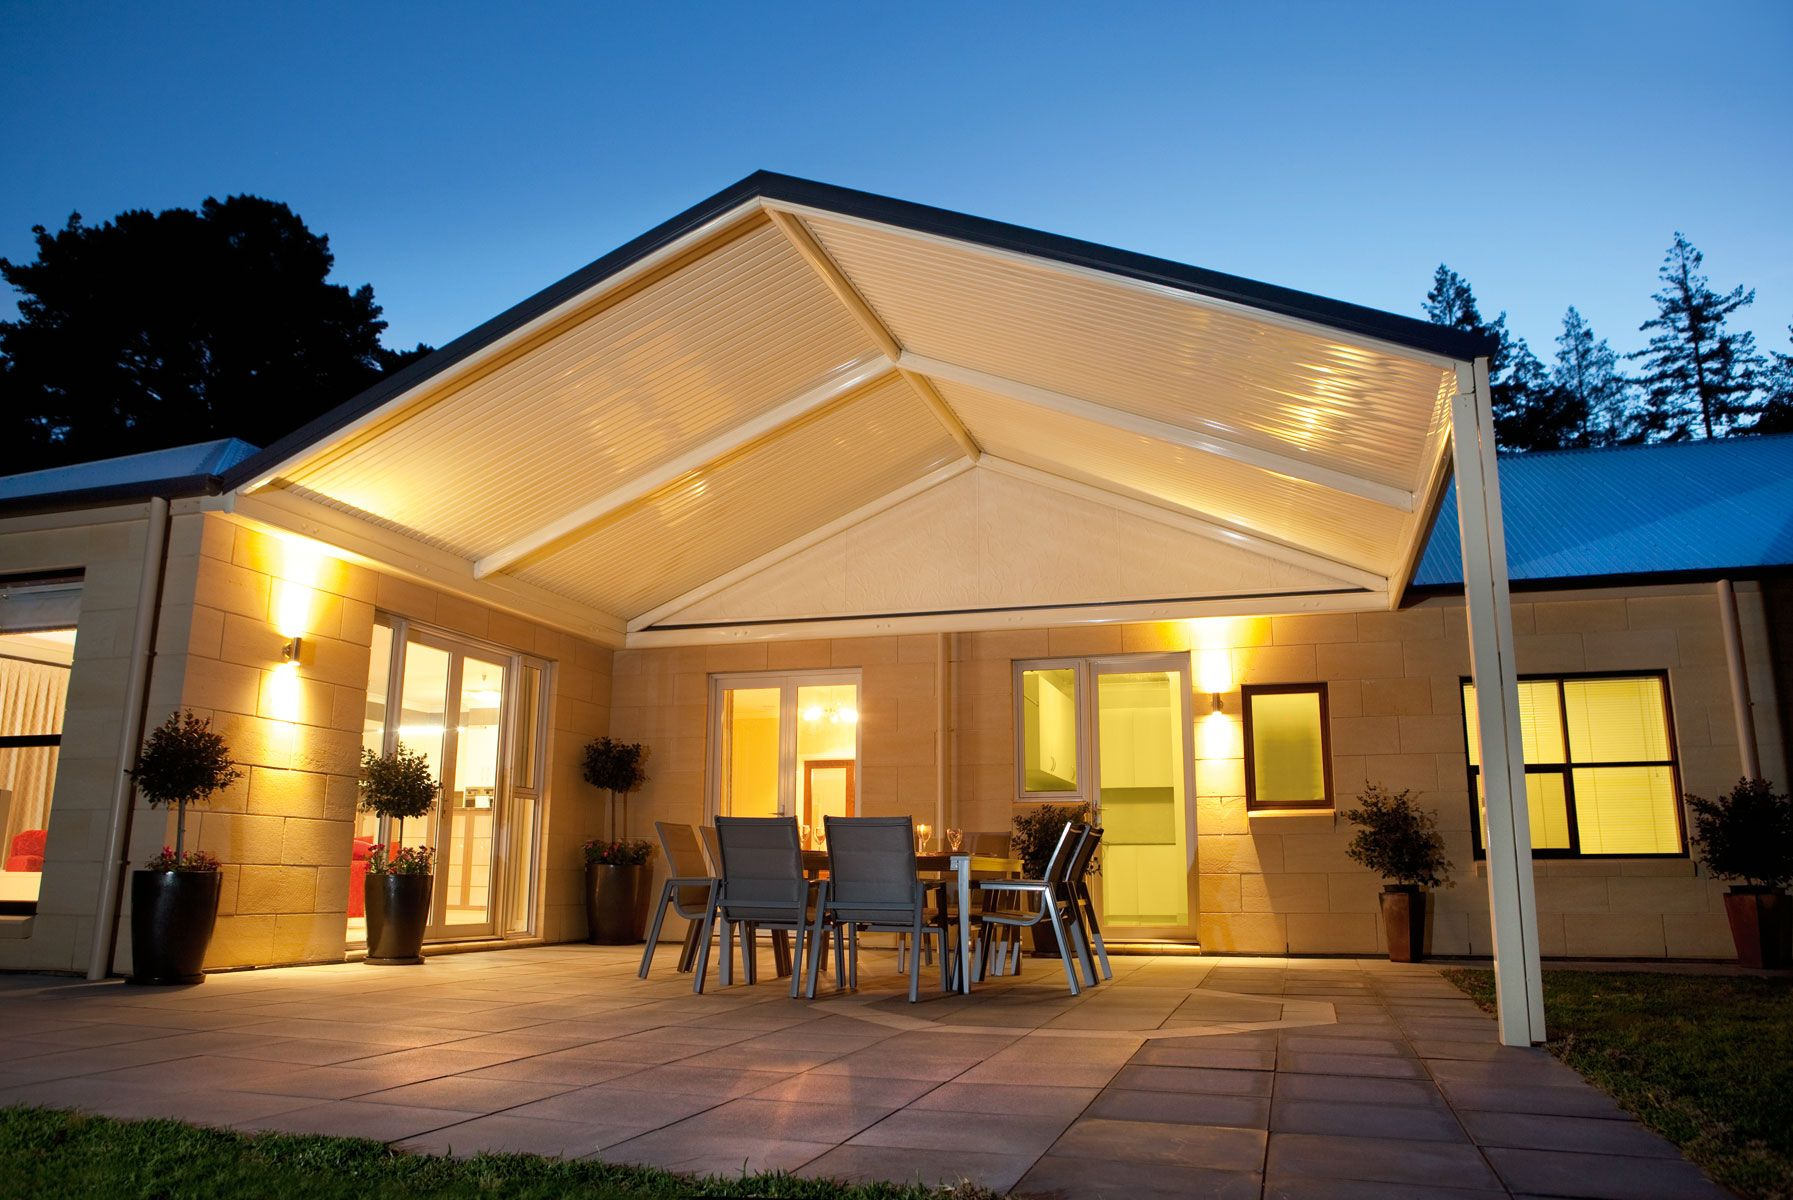 Gable Roof Carport Designs Pergola Carports Patio Roofing